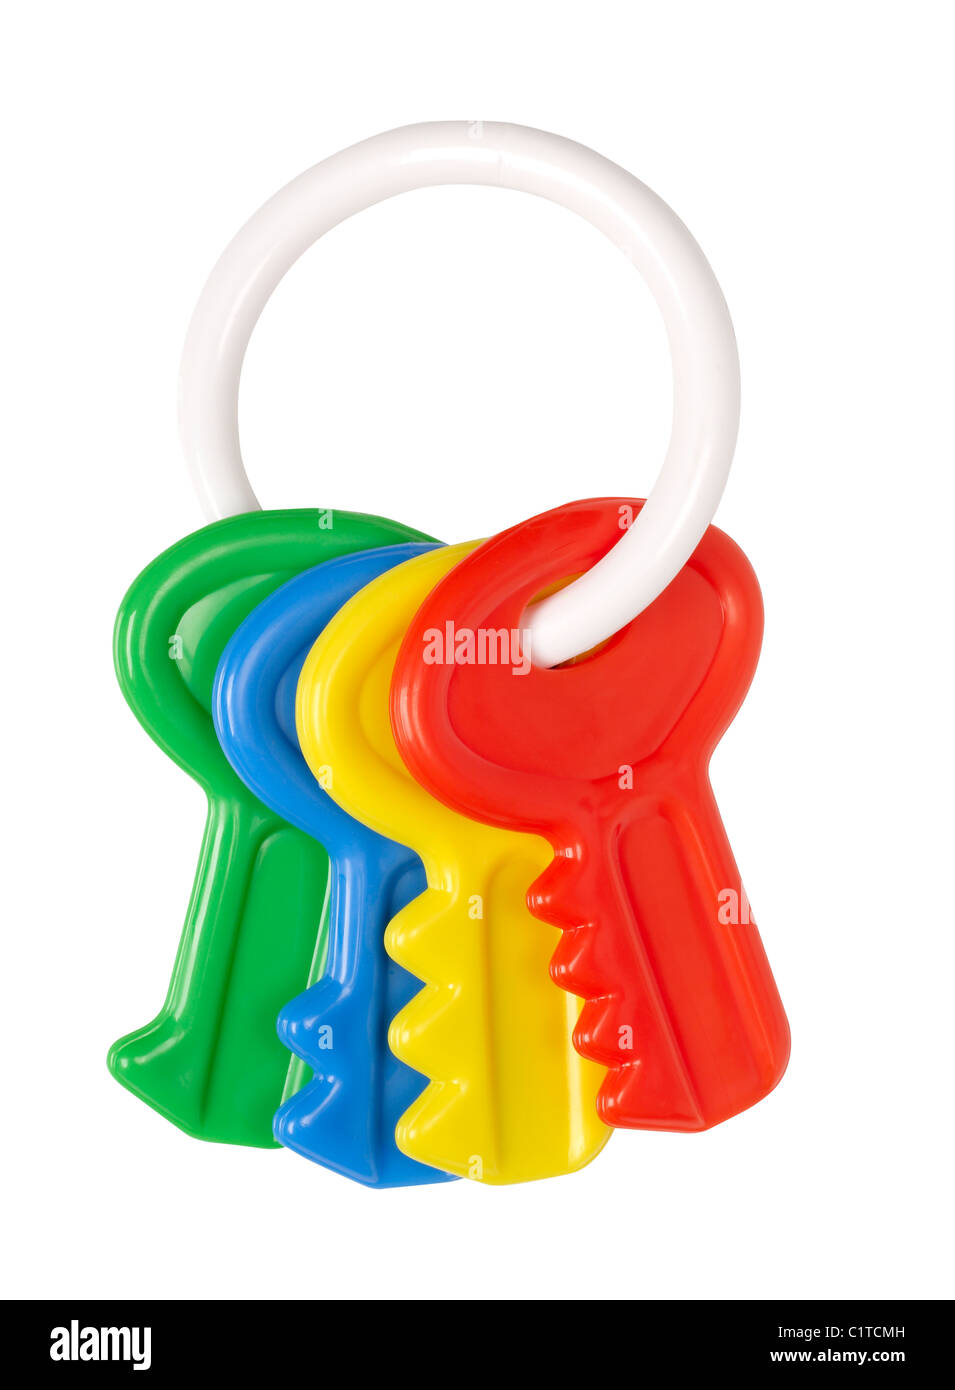 Baby Toy Keys Stock Photo 35572225 Alamy